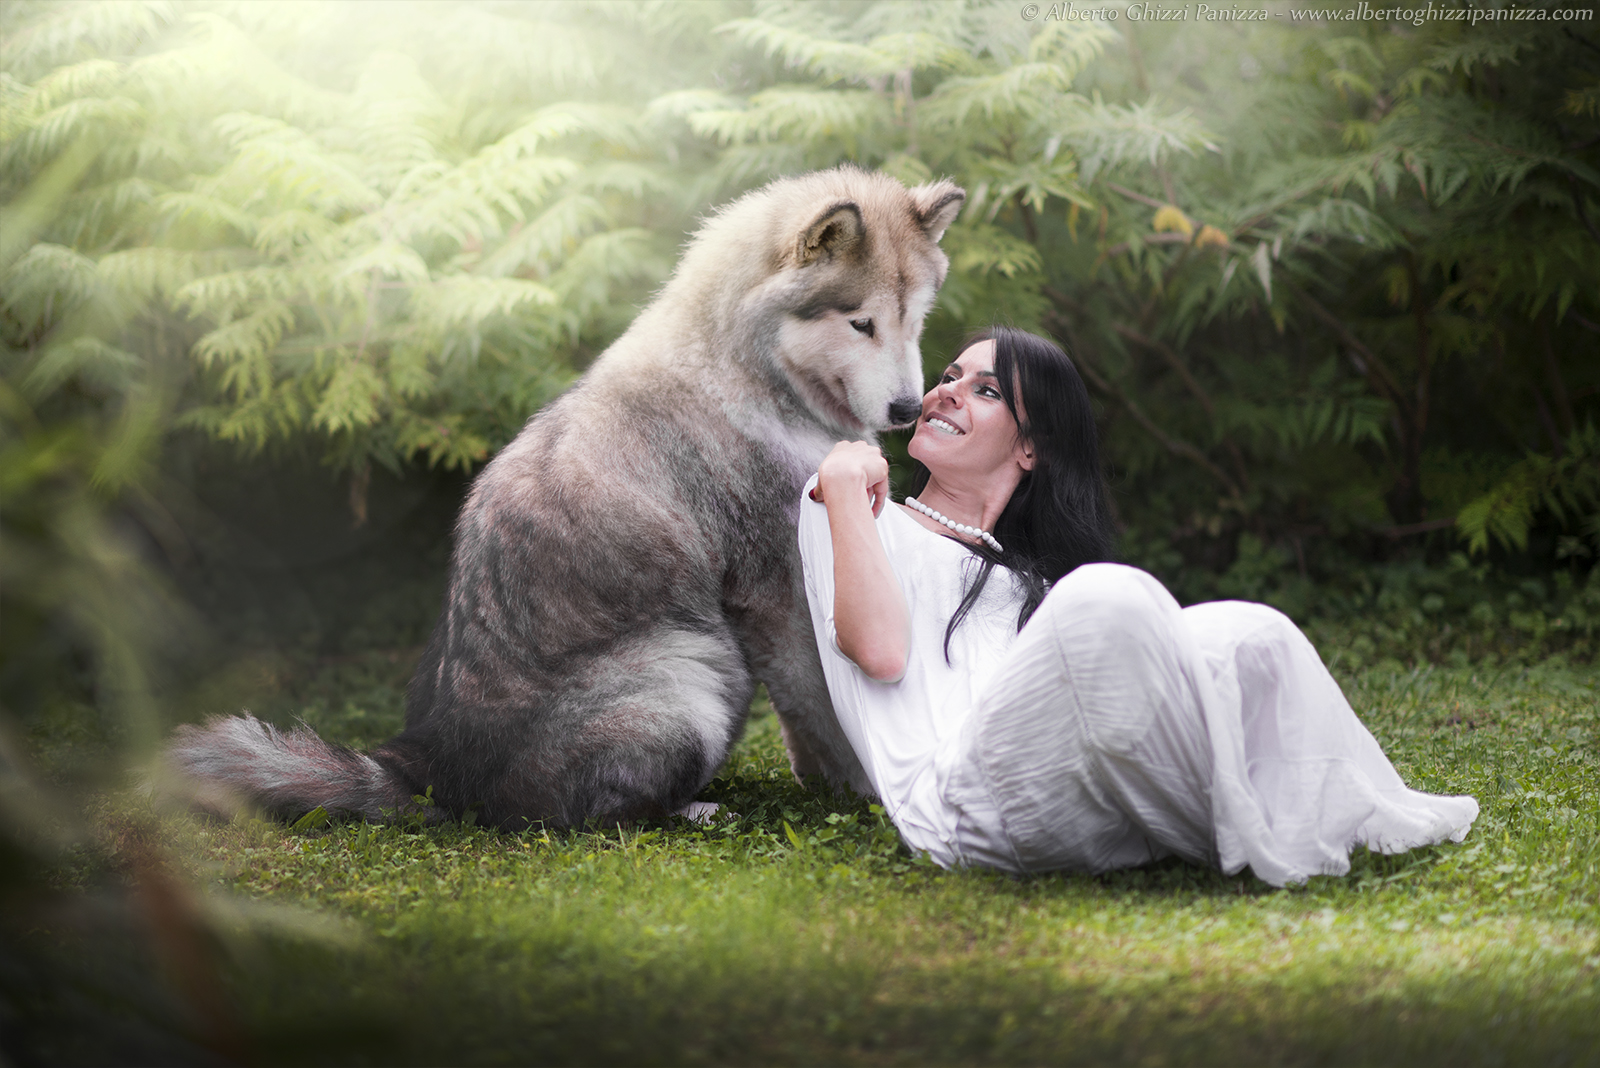 Saved by the wolf